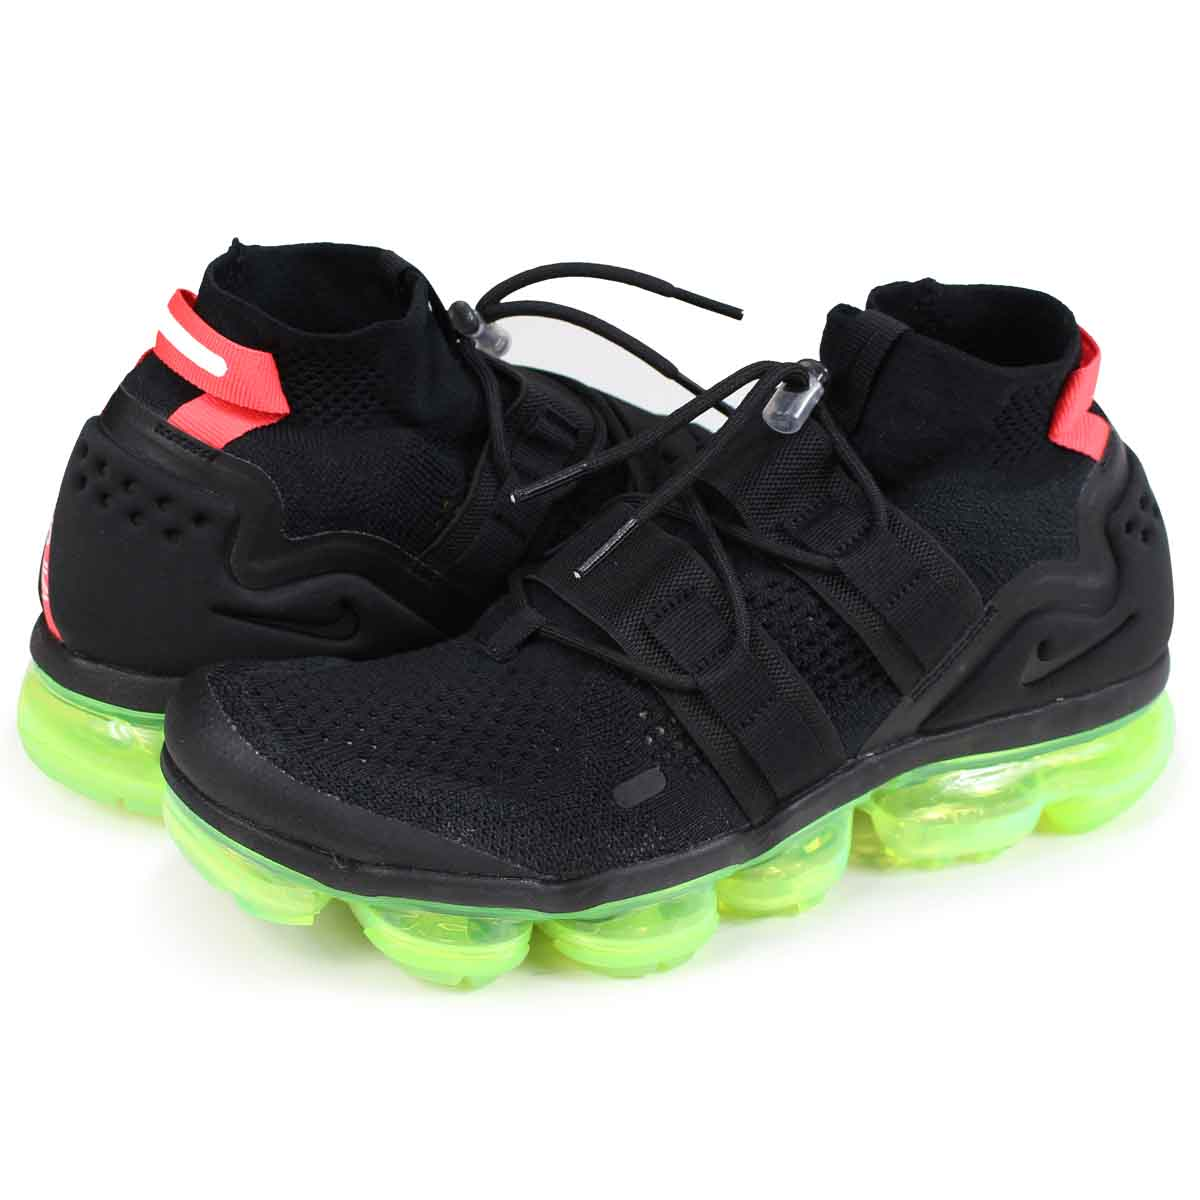 newest 2e234 eaae4 NIKE AIR VAPORMAX FLYKNIT UTILITY Nike air vapor max fried food knit  sneakers men AH6834-007 black [load planned Shinnyu load in reservation  product ...